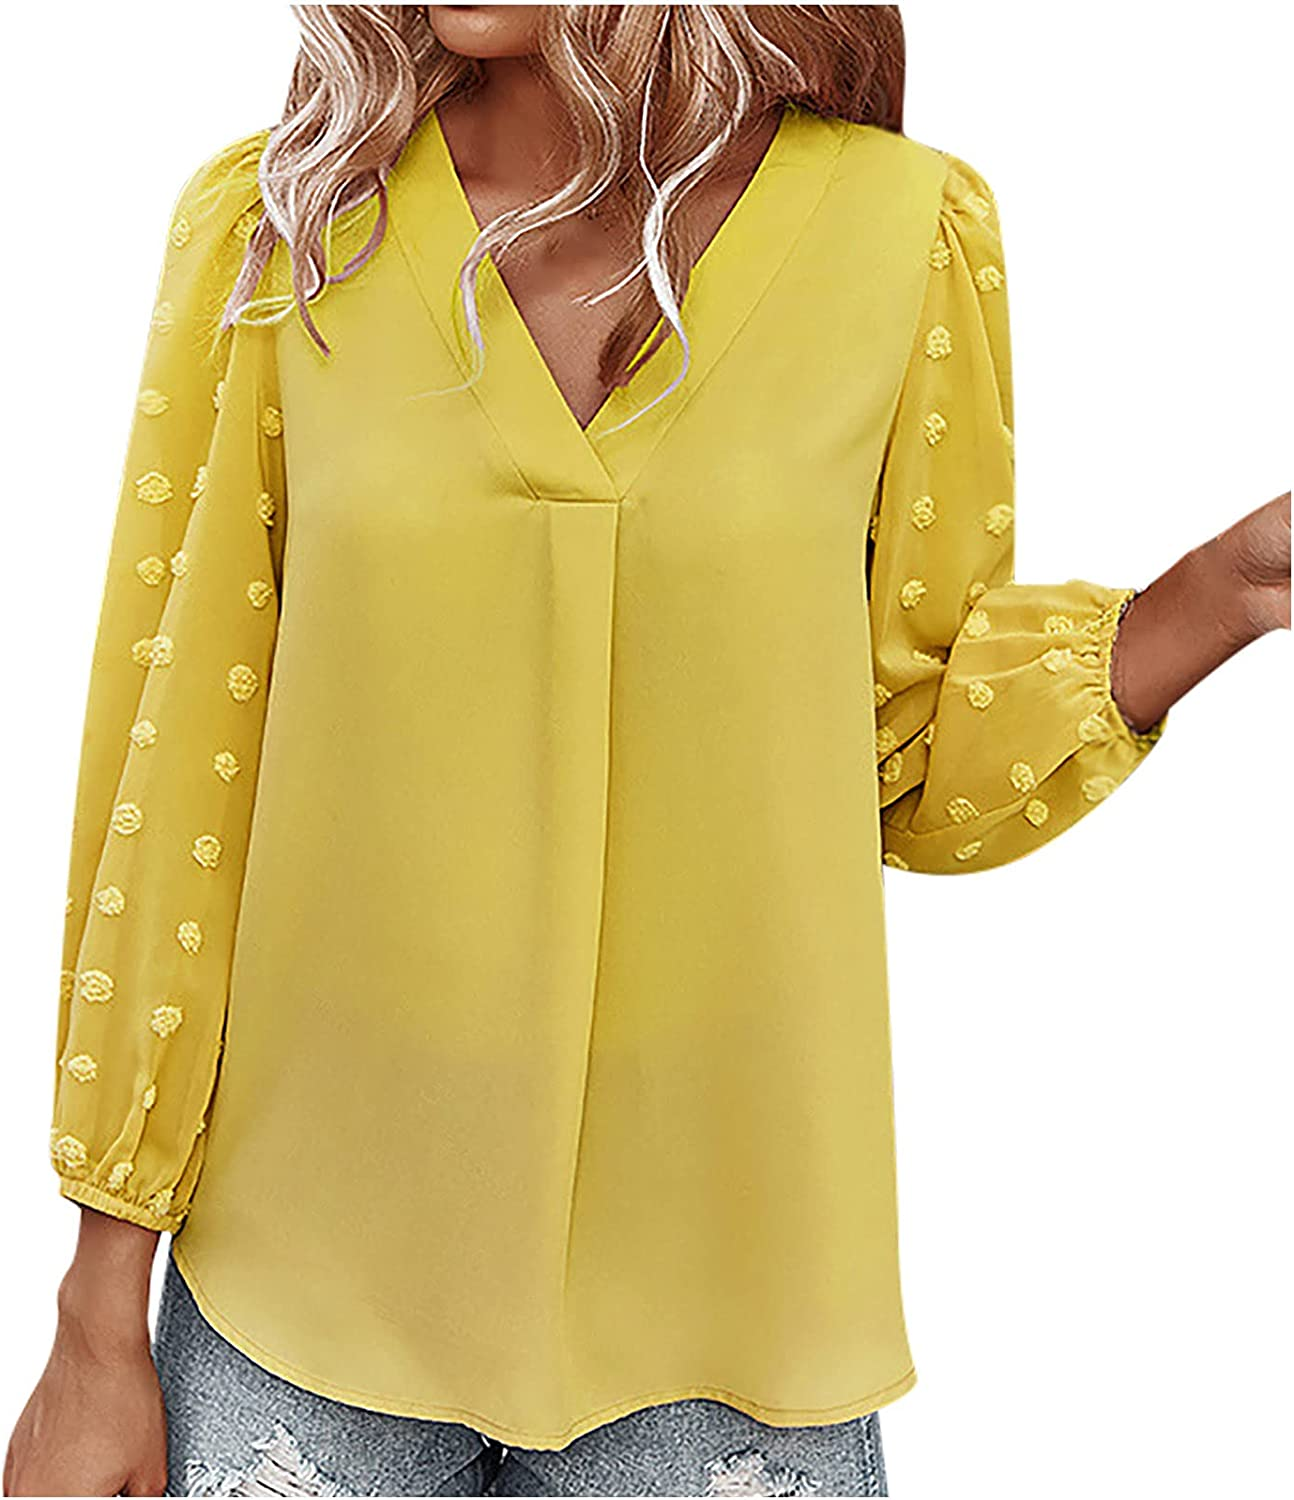 Summer Womens Chiffon Shirt Fashion Solid Color V-Neck Long Sleeve Blouse Tops for Work Office Party Business